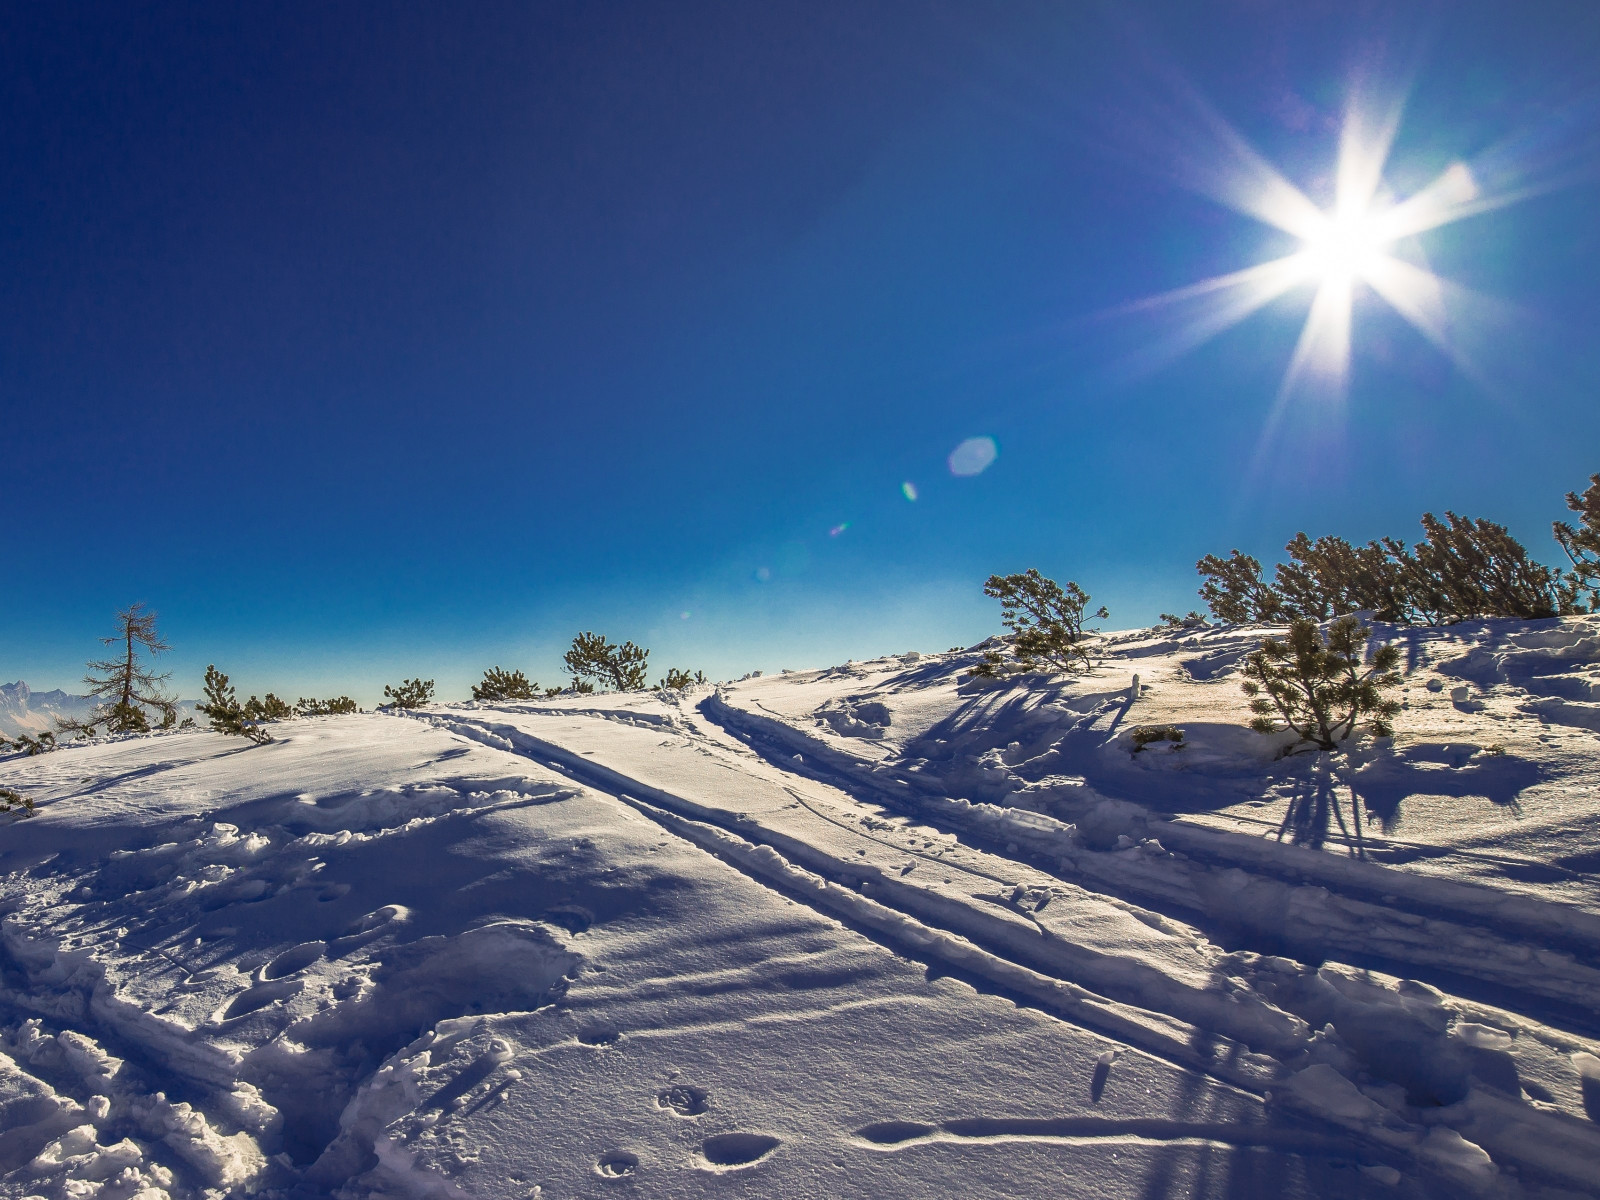 Sunny day in this Winter landscape wallpaper 1600x1200